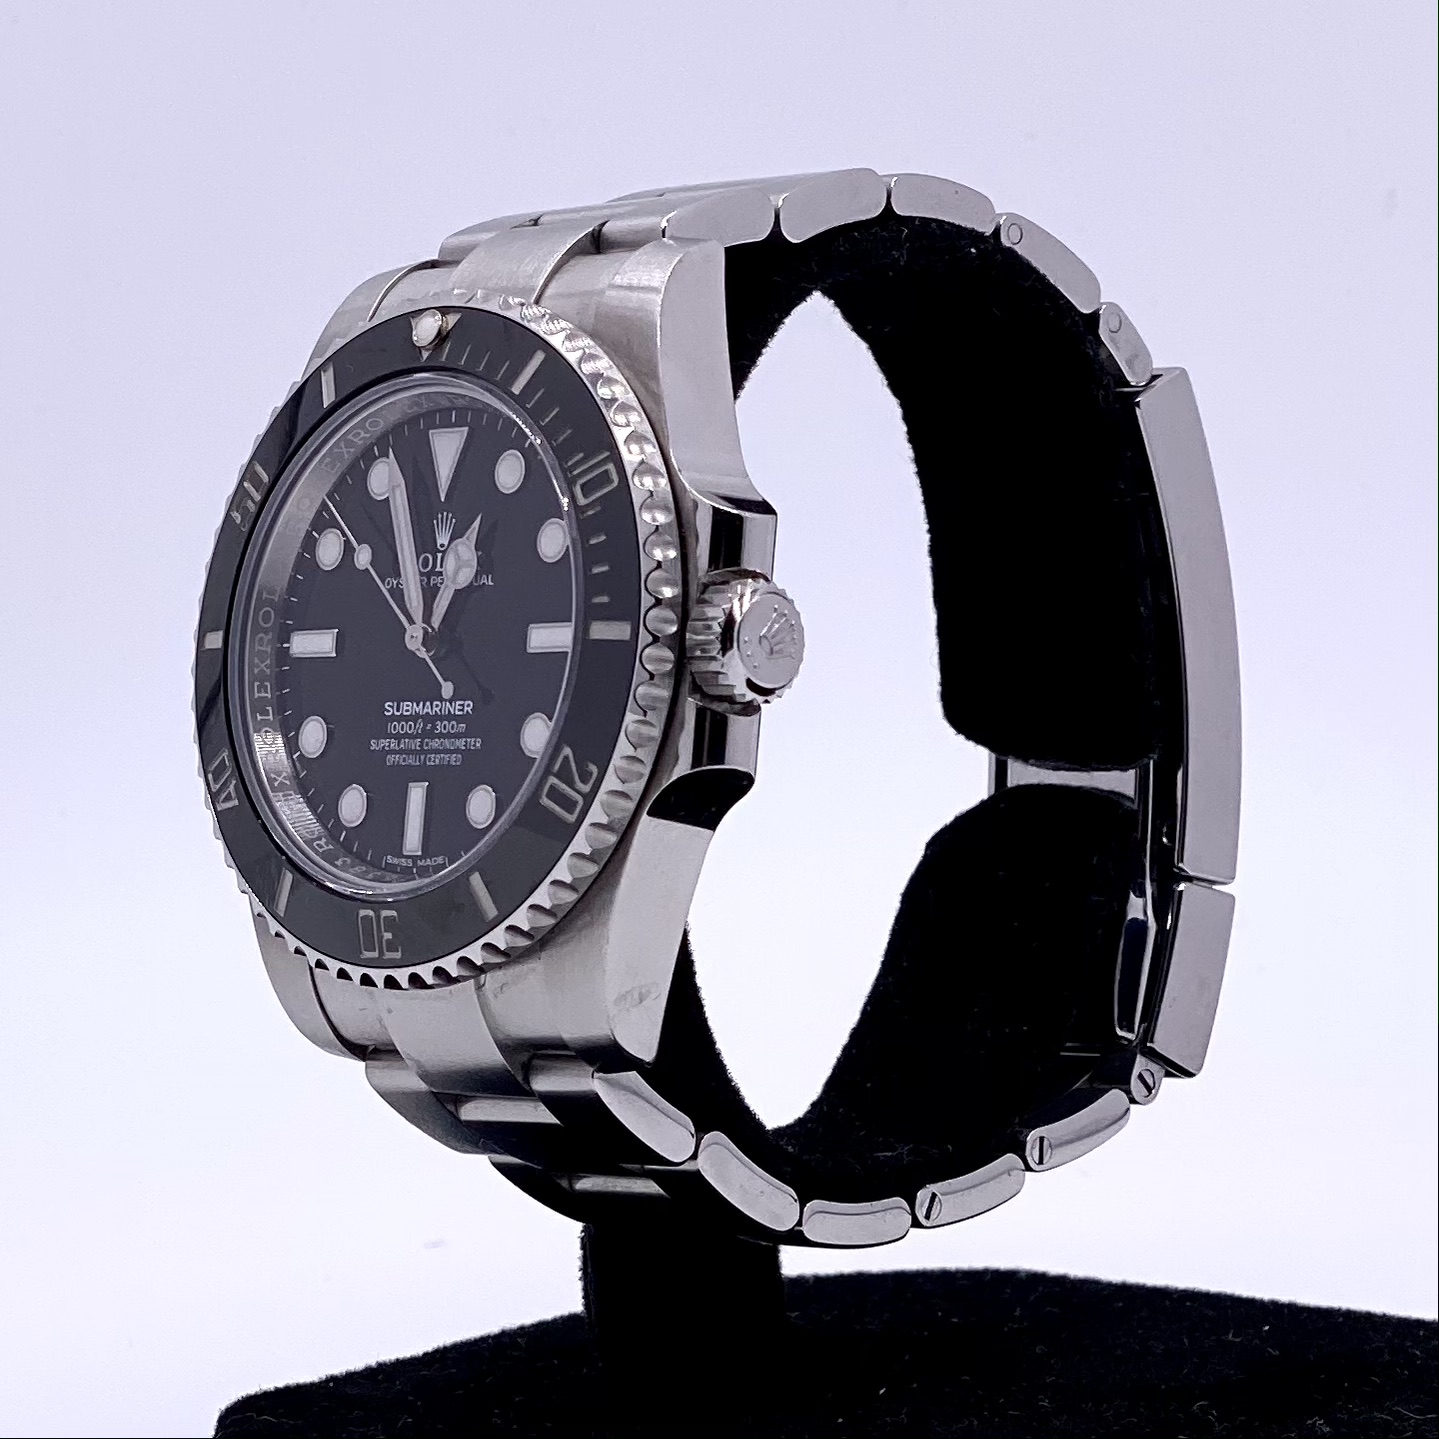 Rolex Submariner 114060 Box and Papers 2019 - Image 2 of 4